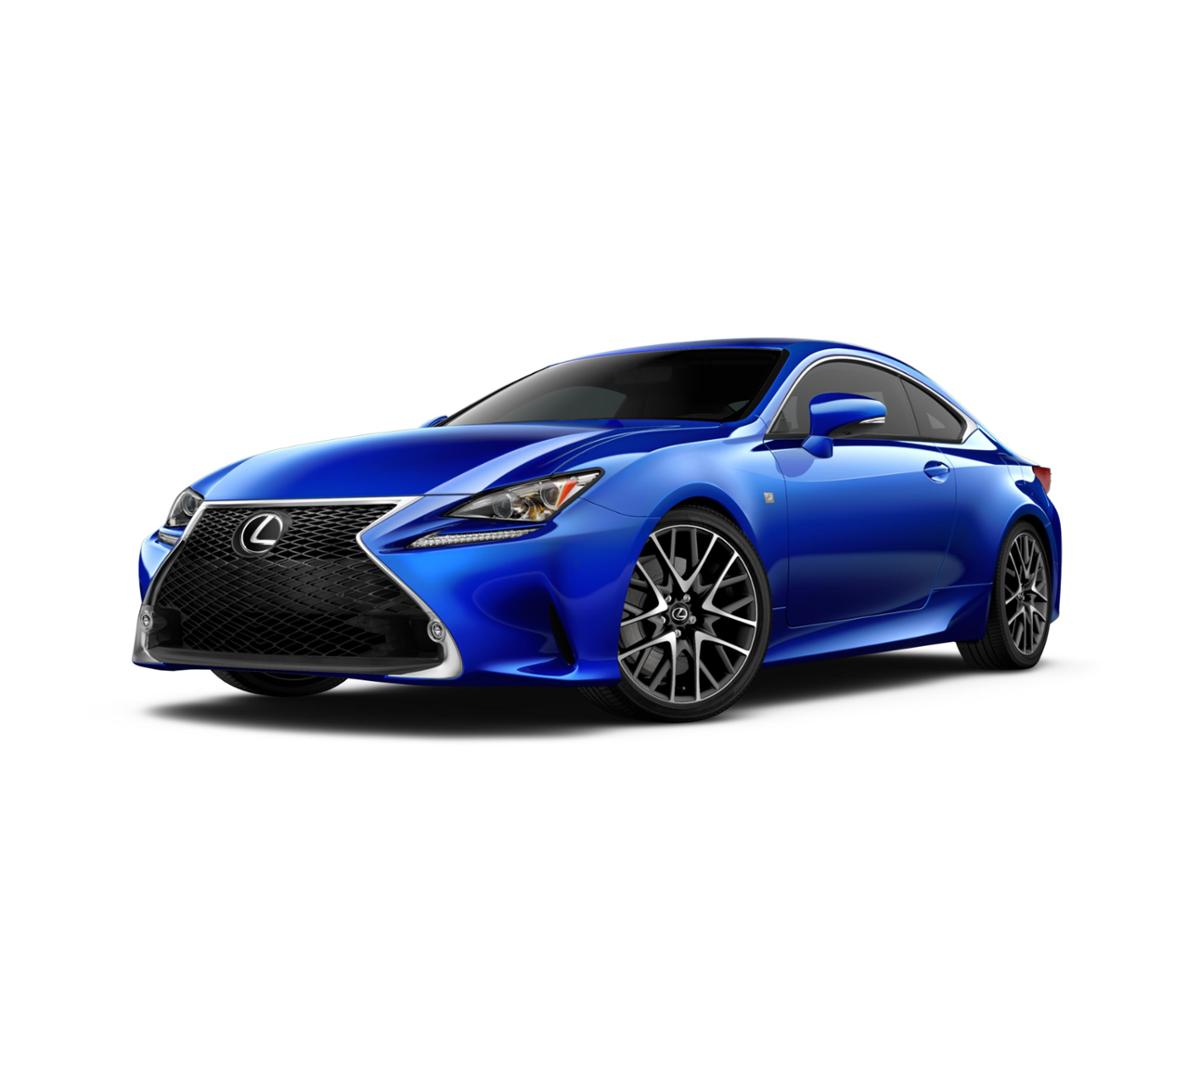 Lexus Of Memphis Used Cars: New Lexus At Lexus Of Memphis , Memphis